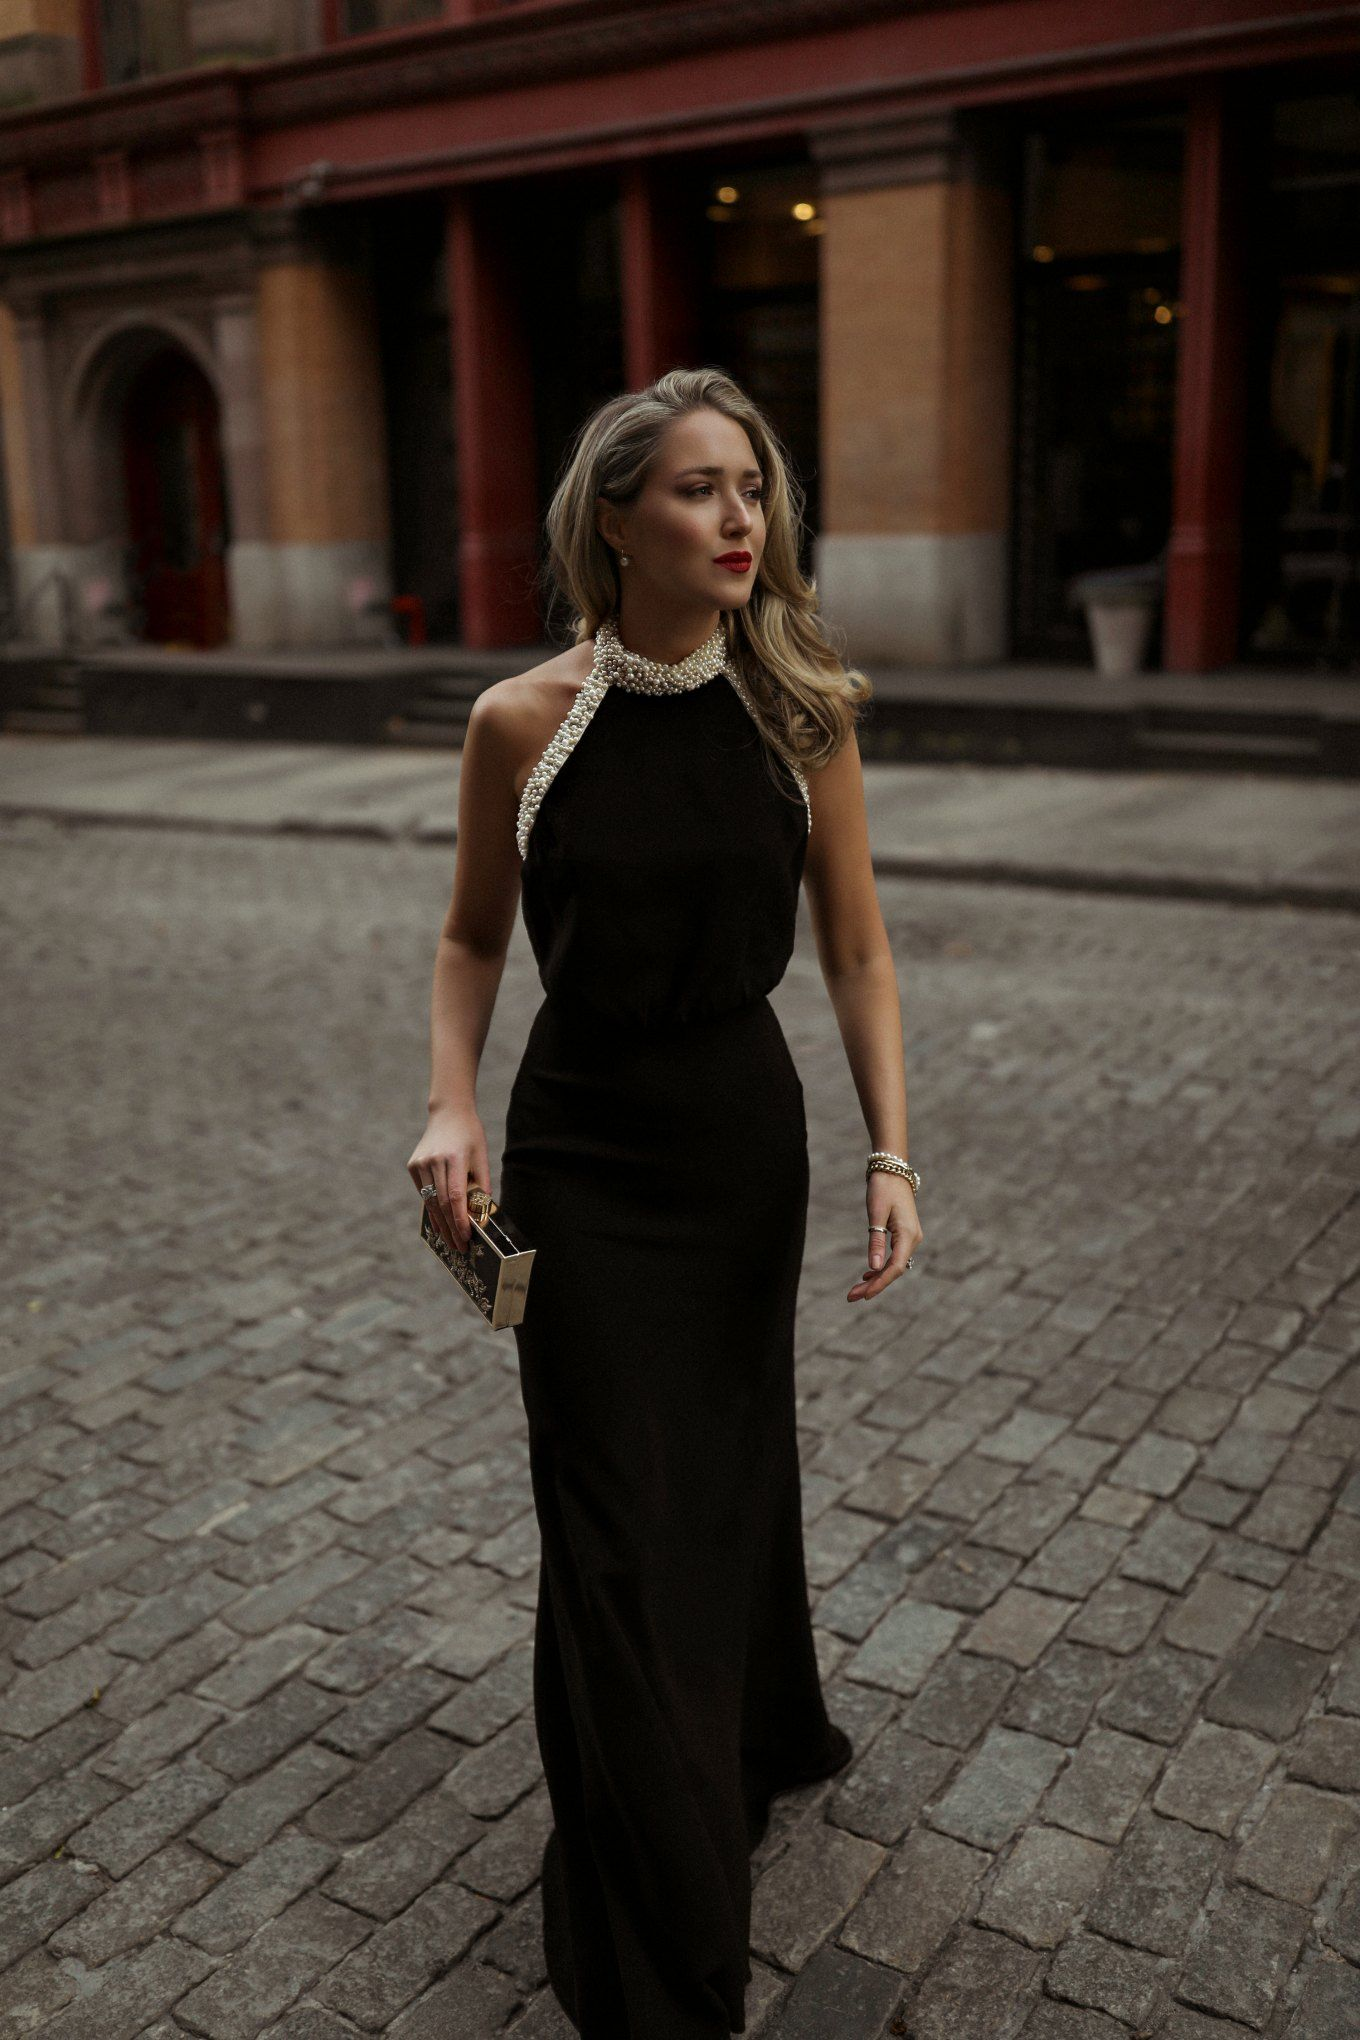 NYC style blogger wearing black evening gown